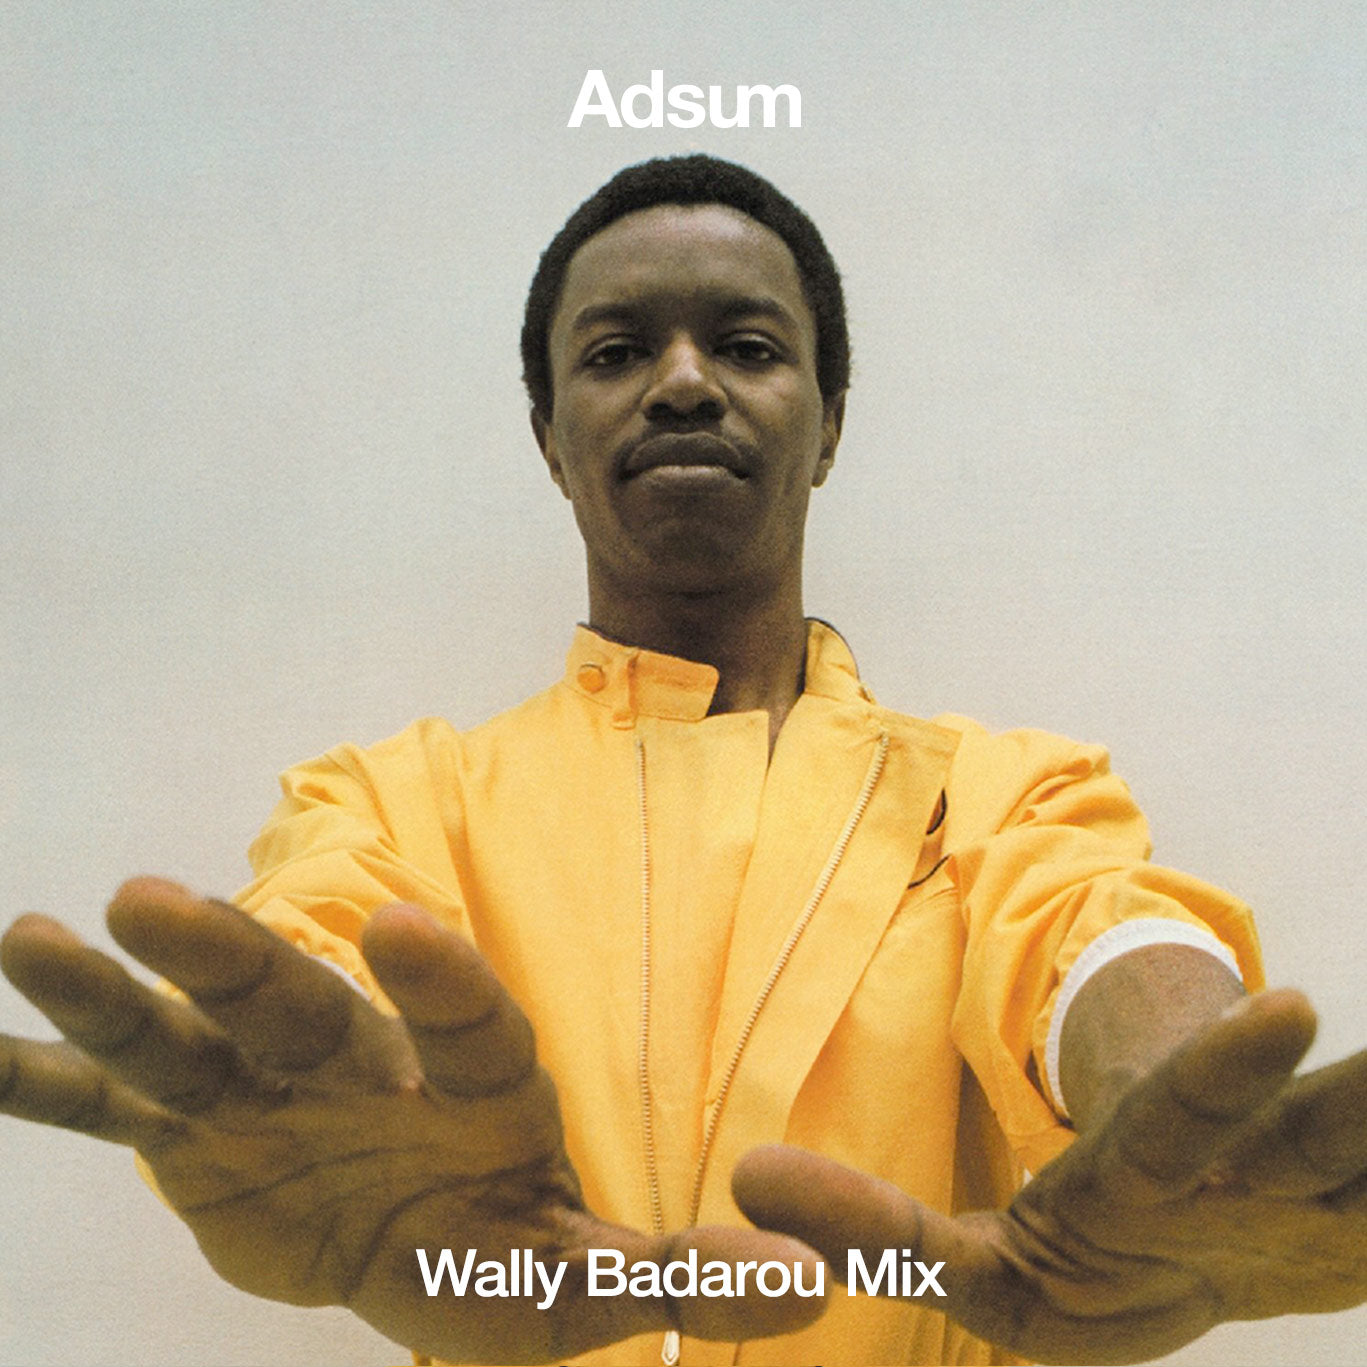 Adsum - Wally Badarou Mix